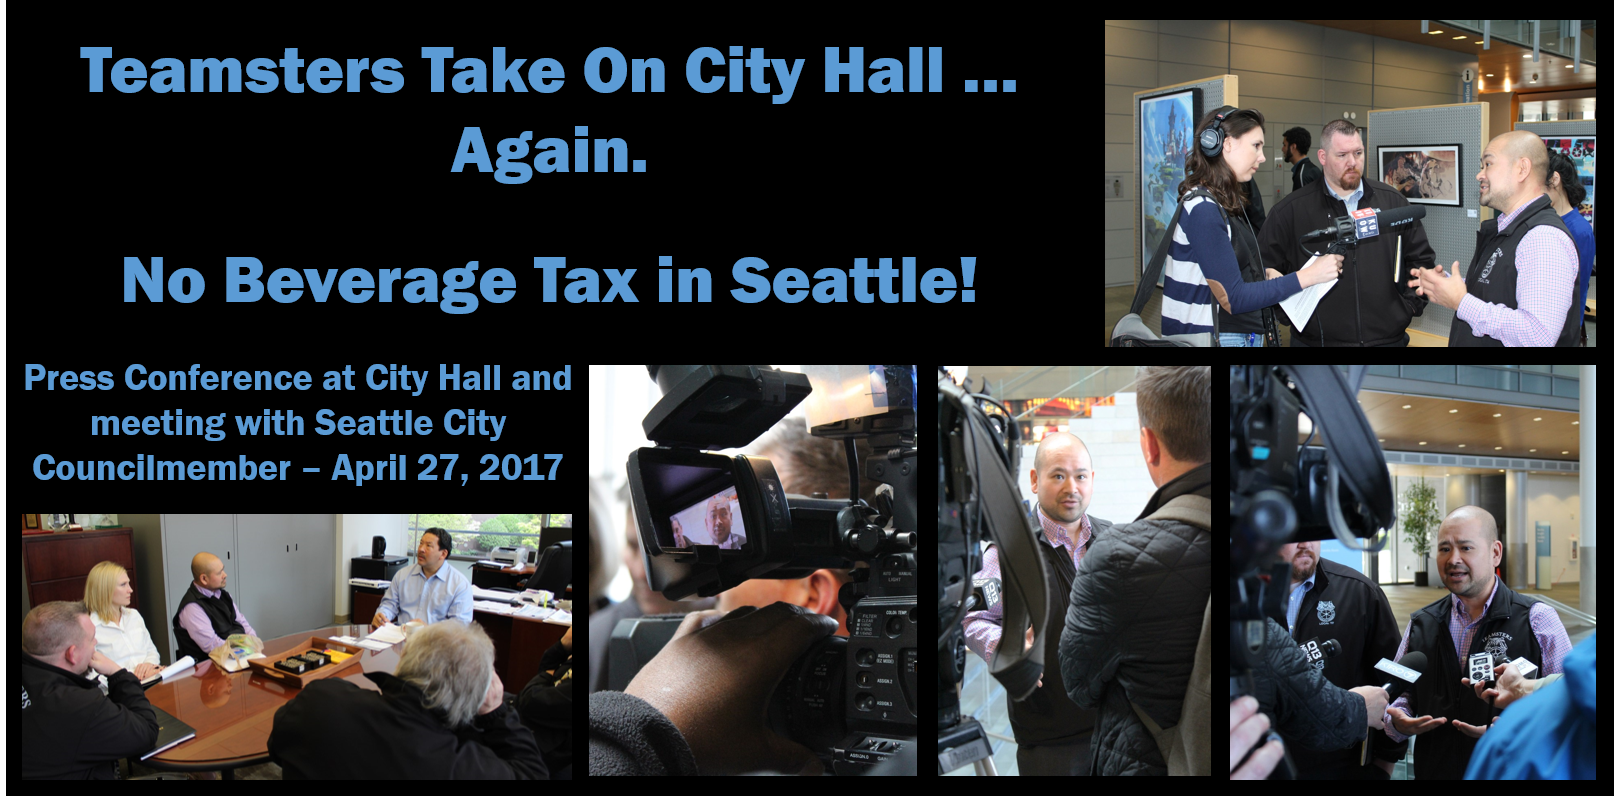 2017-4-27-Beverage-Tax-City-Hall